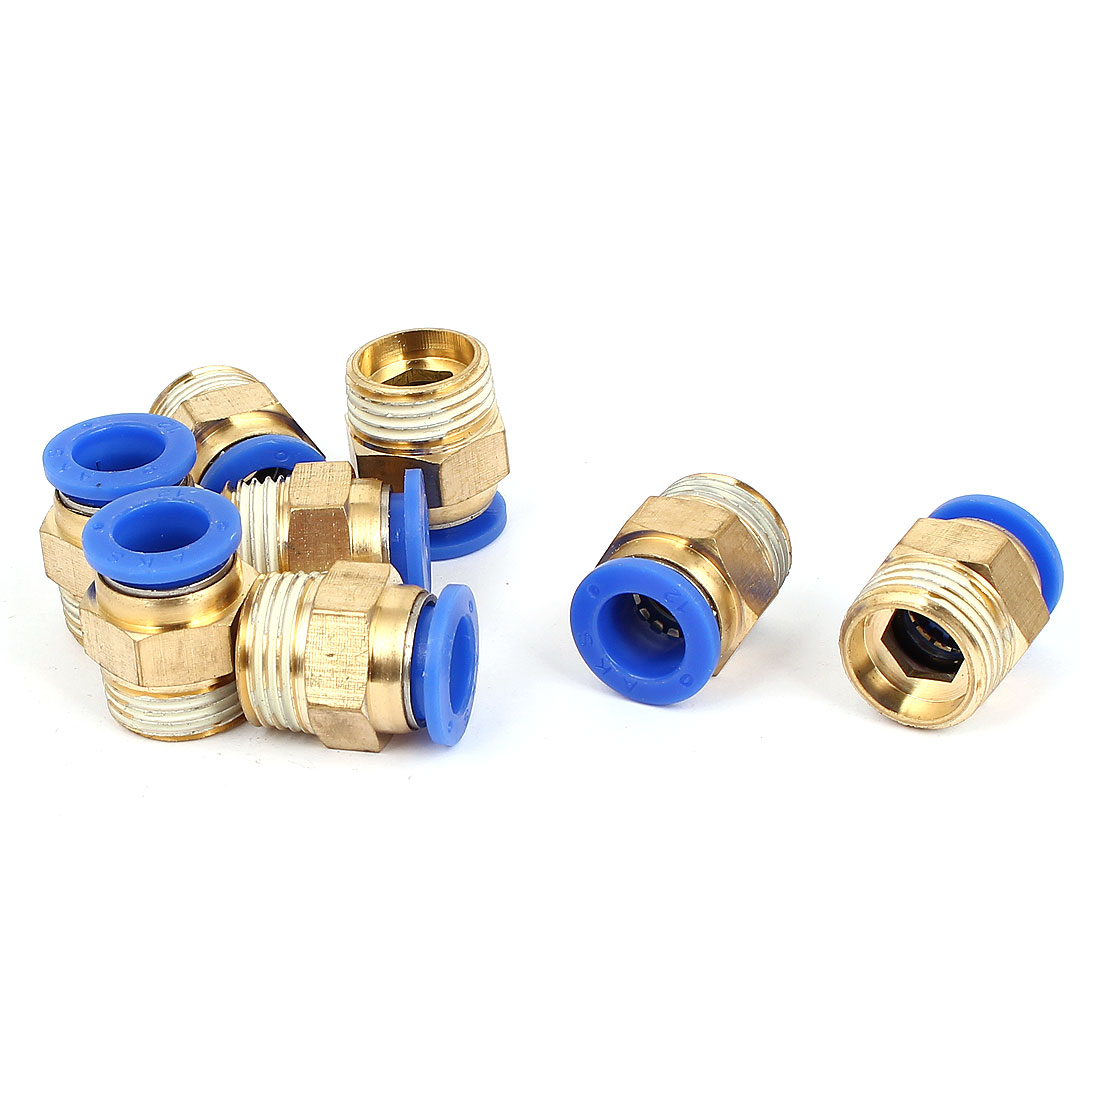 12mm Tube 1/2BSP Male Thread Straight Pneumatic Push In Quick Connect Fitting Coupler 8pcs